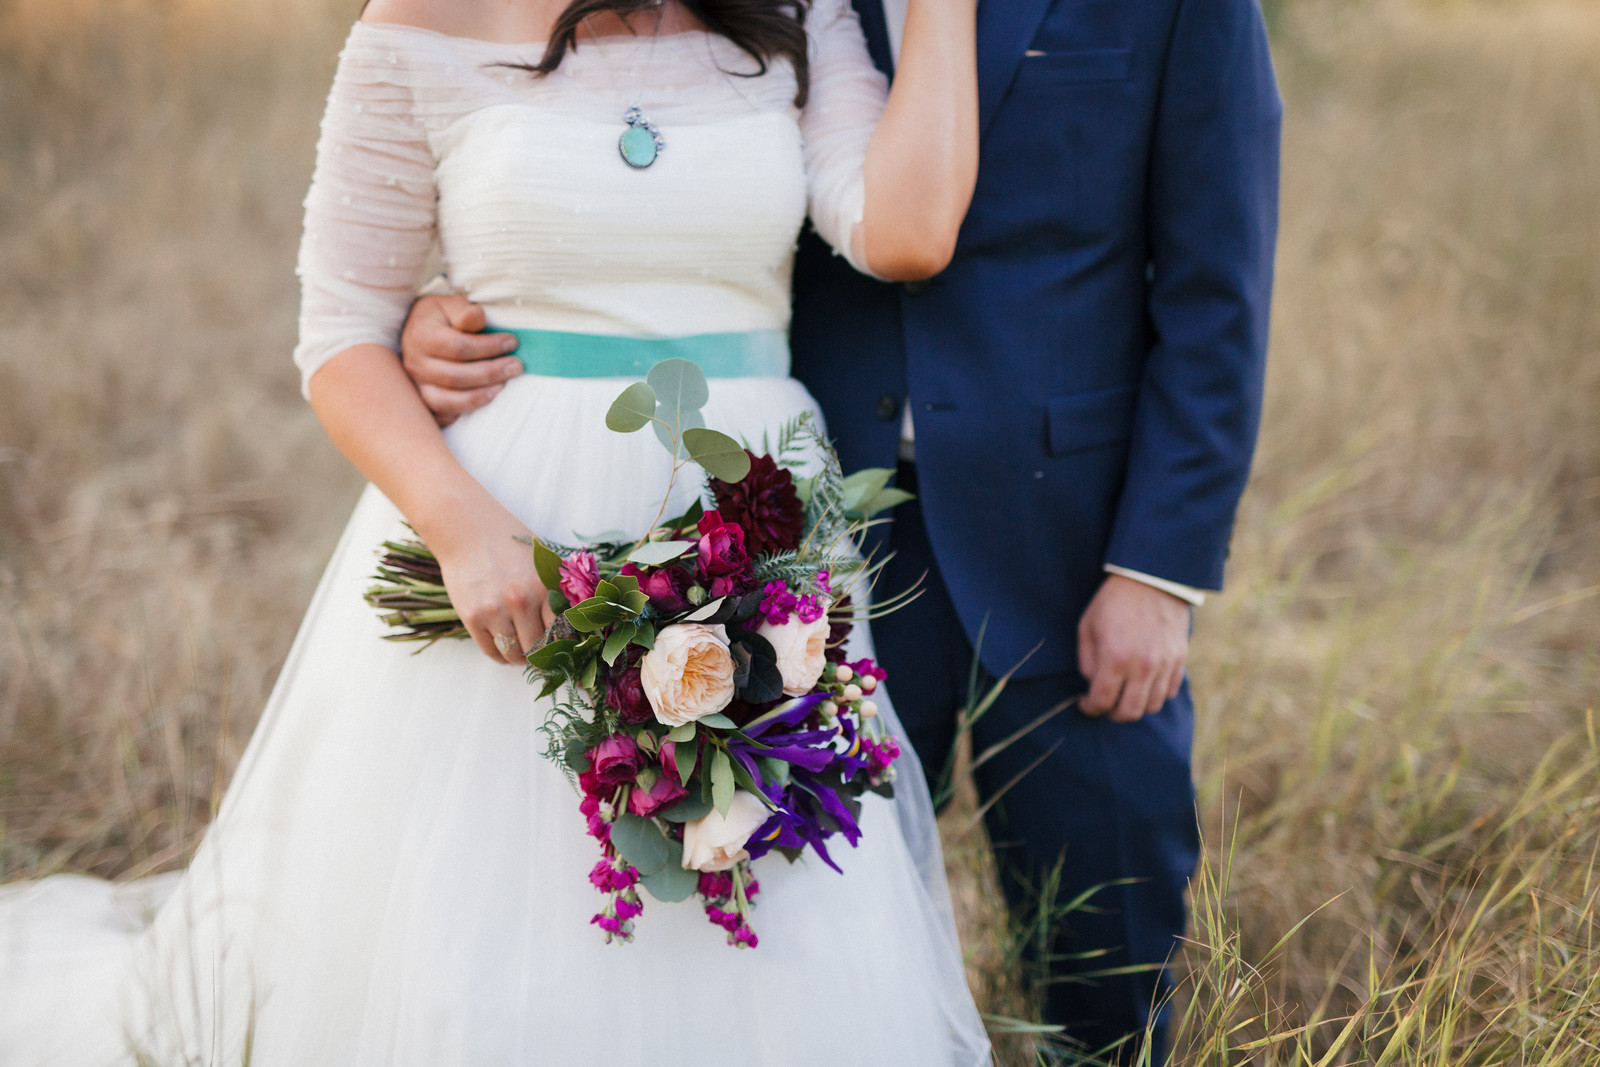 Jewel tone wedding bouquet, velvet,